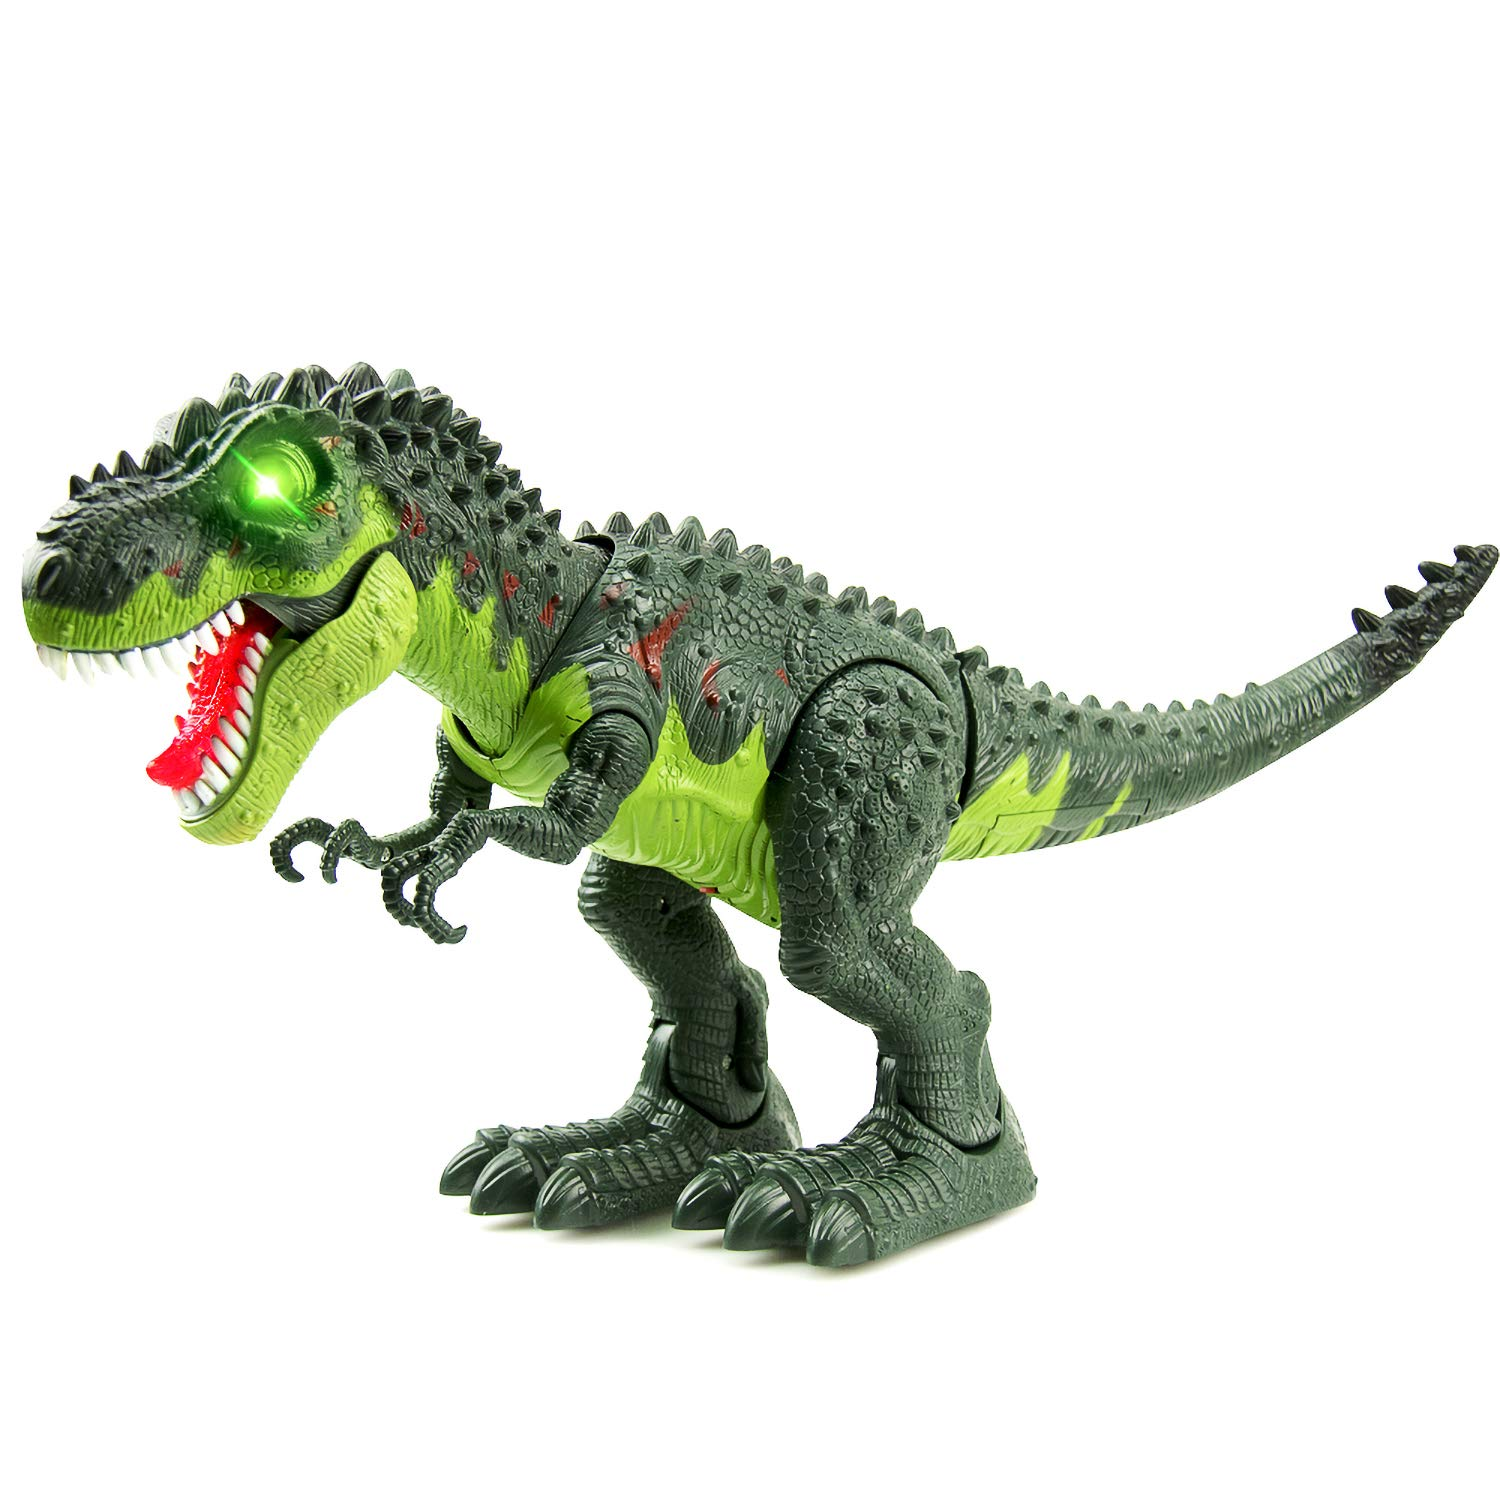 WonderPlay Walking Dinosaur T-Rex Toy Figure with Lights and Sounds Realistic Tyrannosaurus Dinosaur Toys for Kids Battery Operated Green